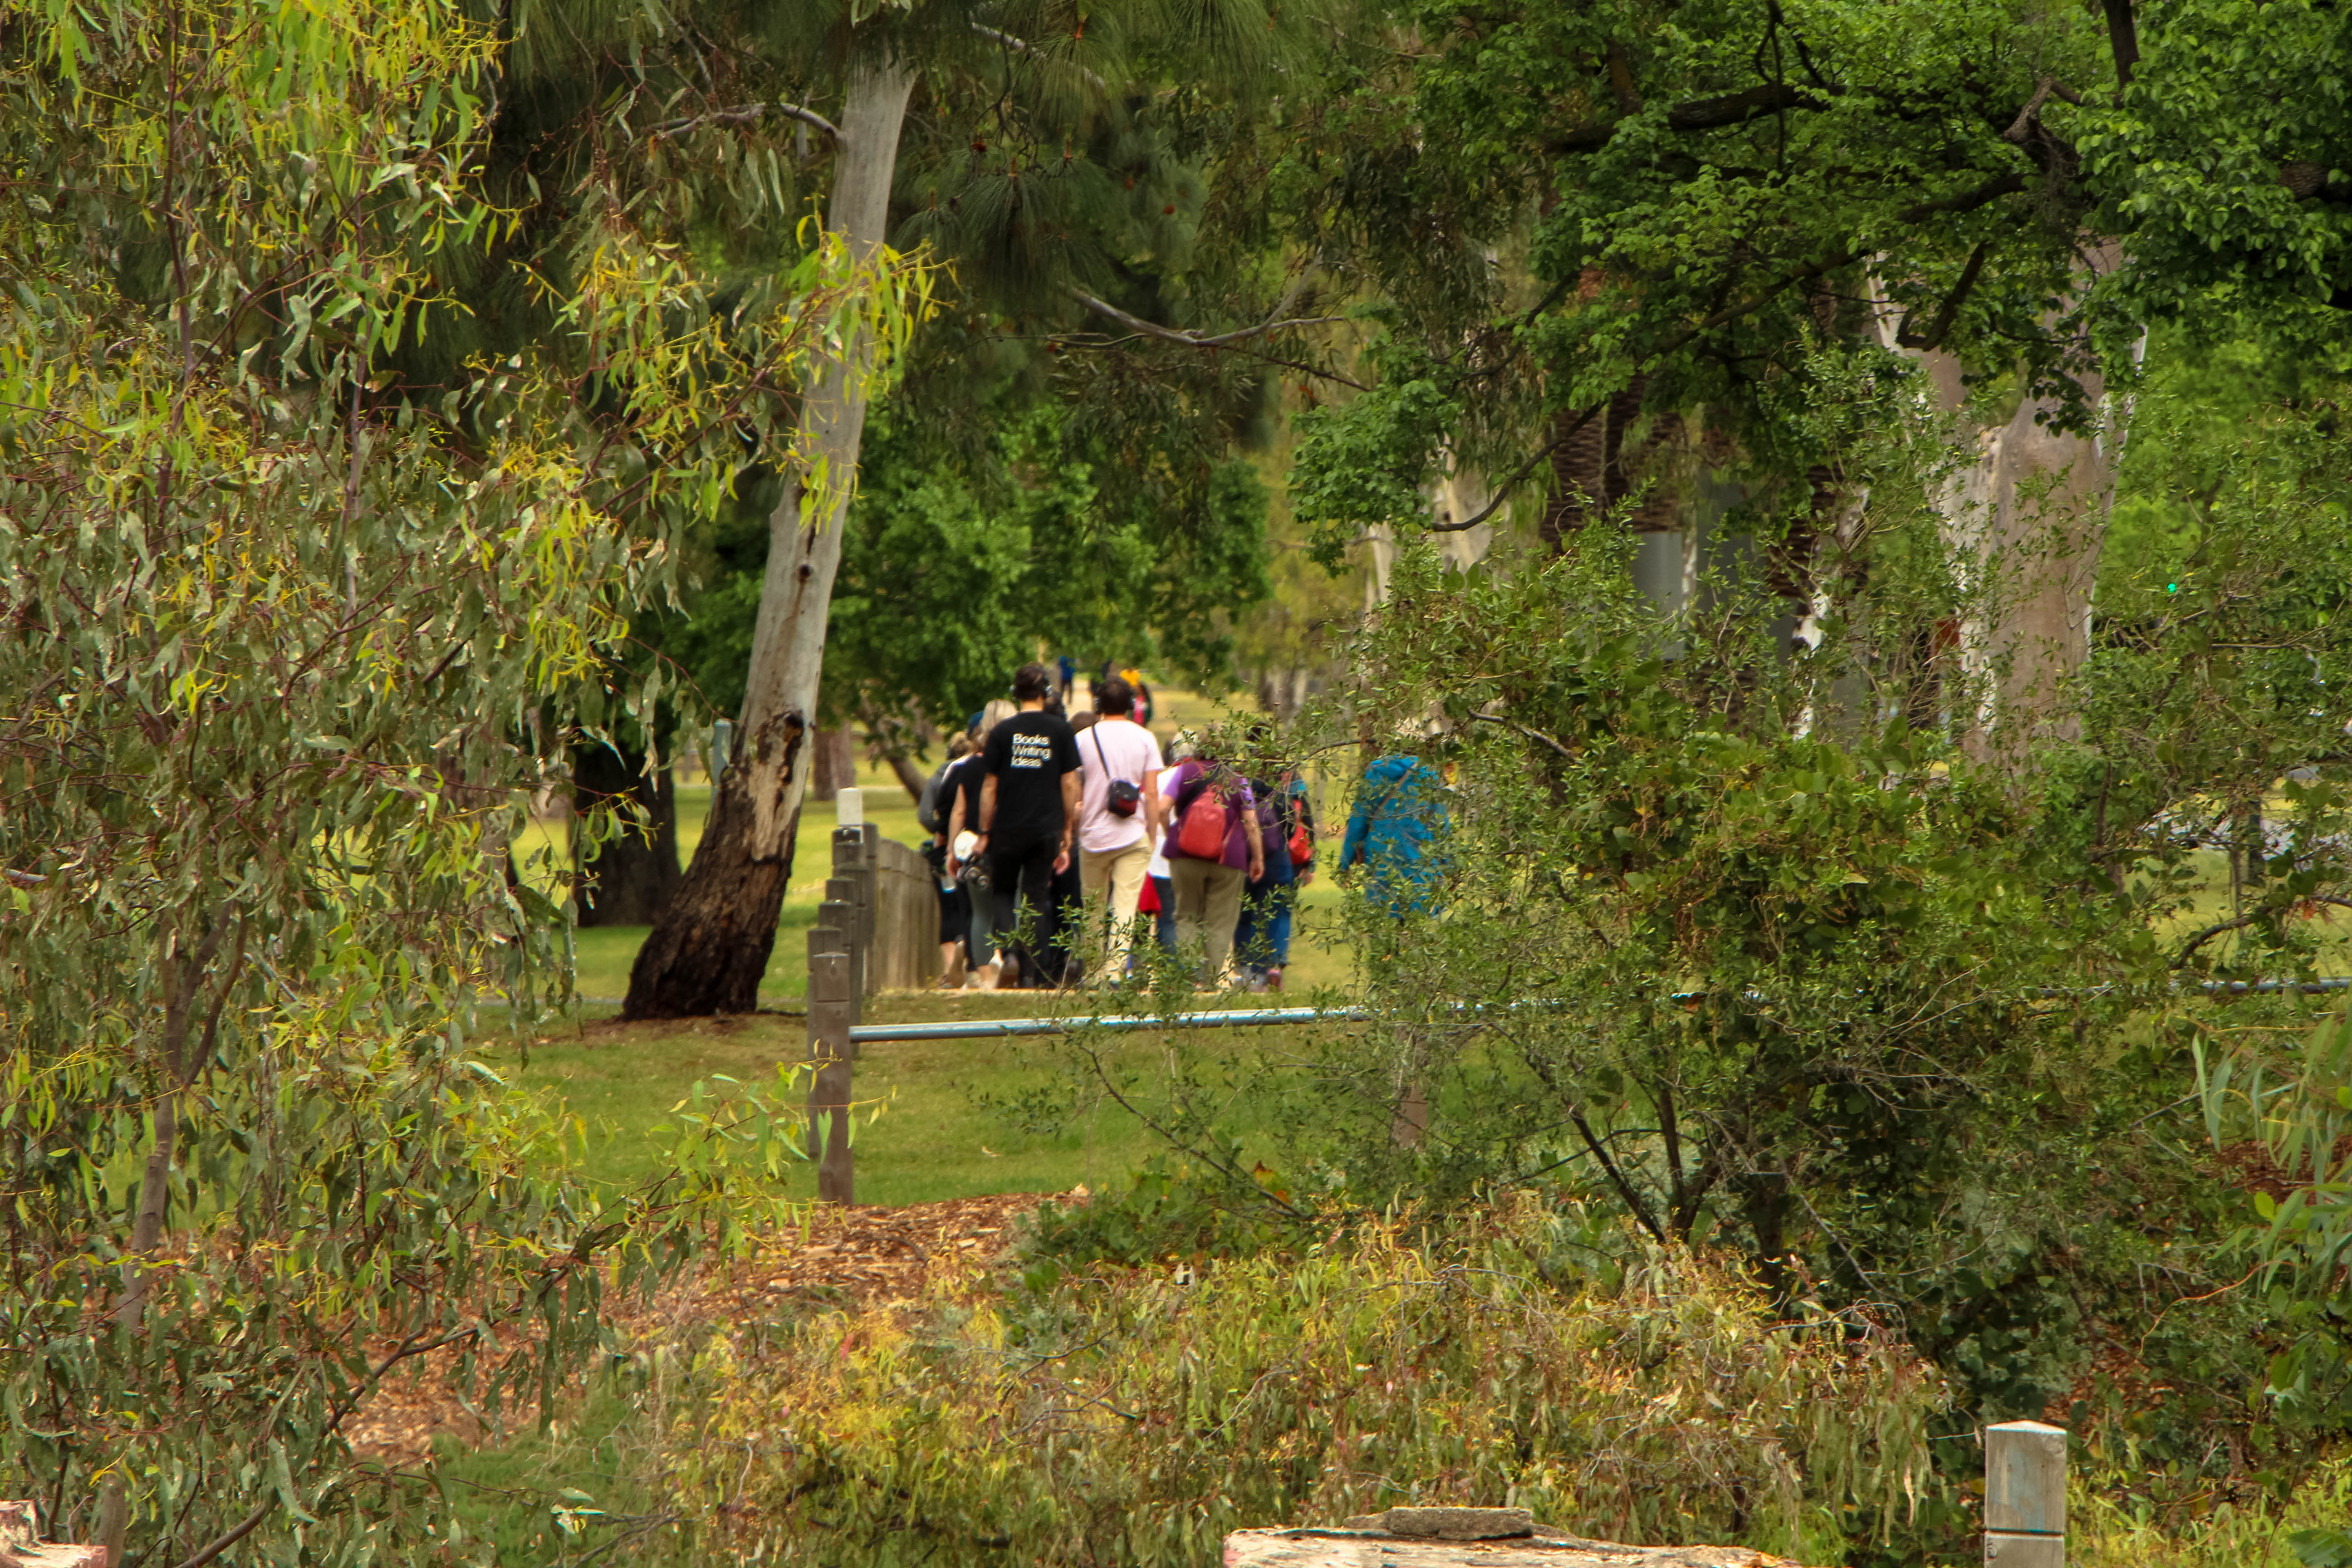 Photo of the group of walkers as seen in the distance through a gap in the trees